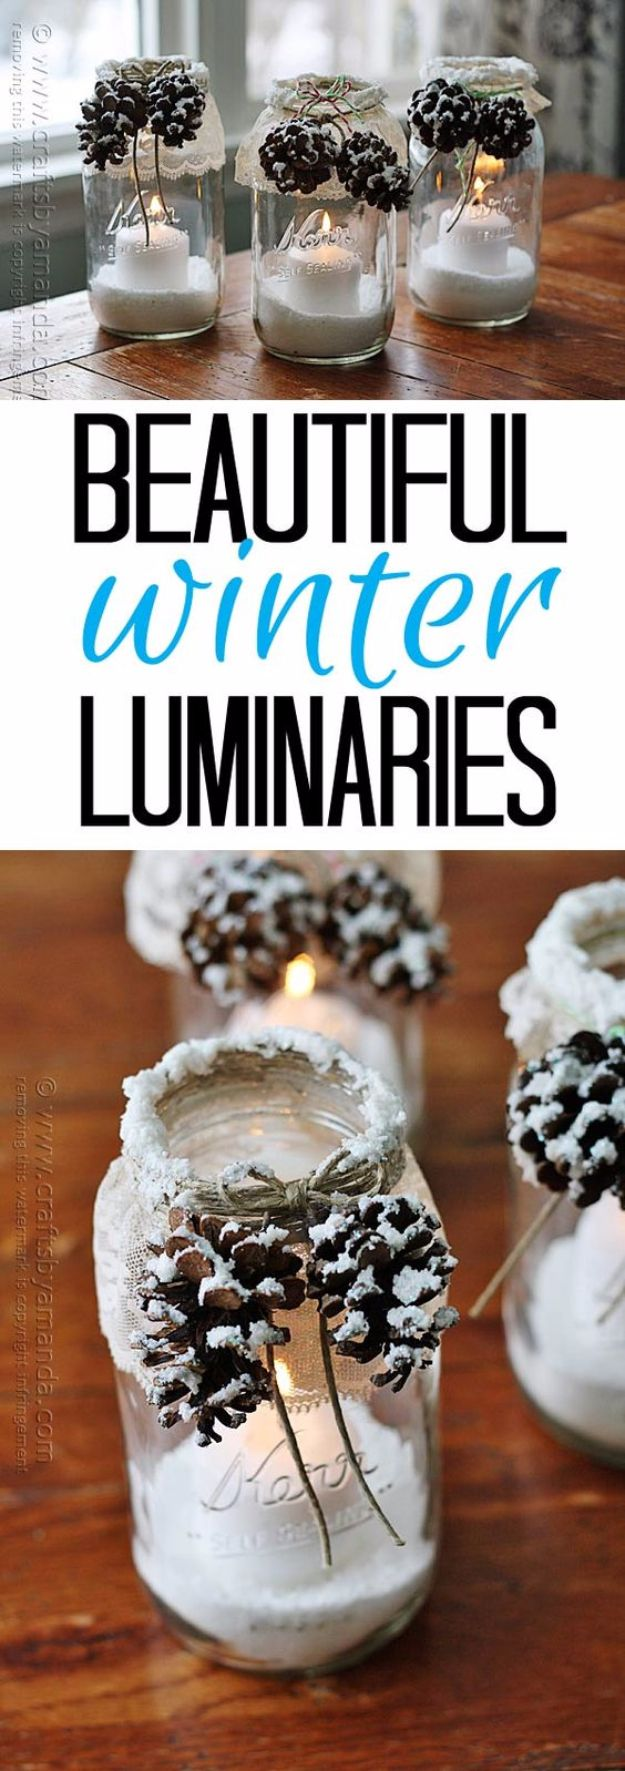 DIY Christmas Luminaries and Home Decor for The Holidays - Snowy Pinecone Candle Jars - Cool Candle Holders, Tea Lights, Holiday Gift Ideas, Christmas Crafts for Kids - Line Winter Walkways With Rustic Mason Jars, Paper Bag Luminaries and Creative Lighting Ideas http://diyjoy.com/diy-christmas-luminaries